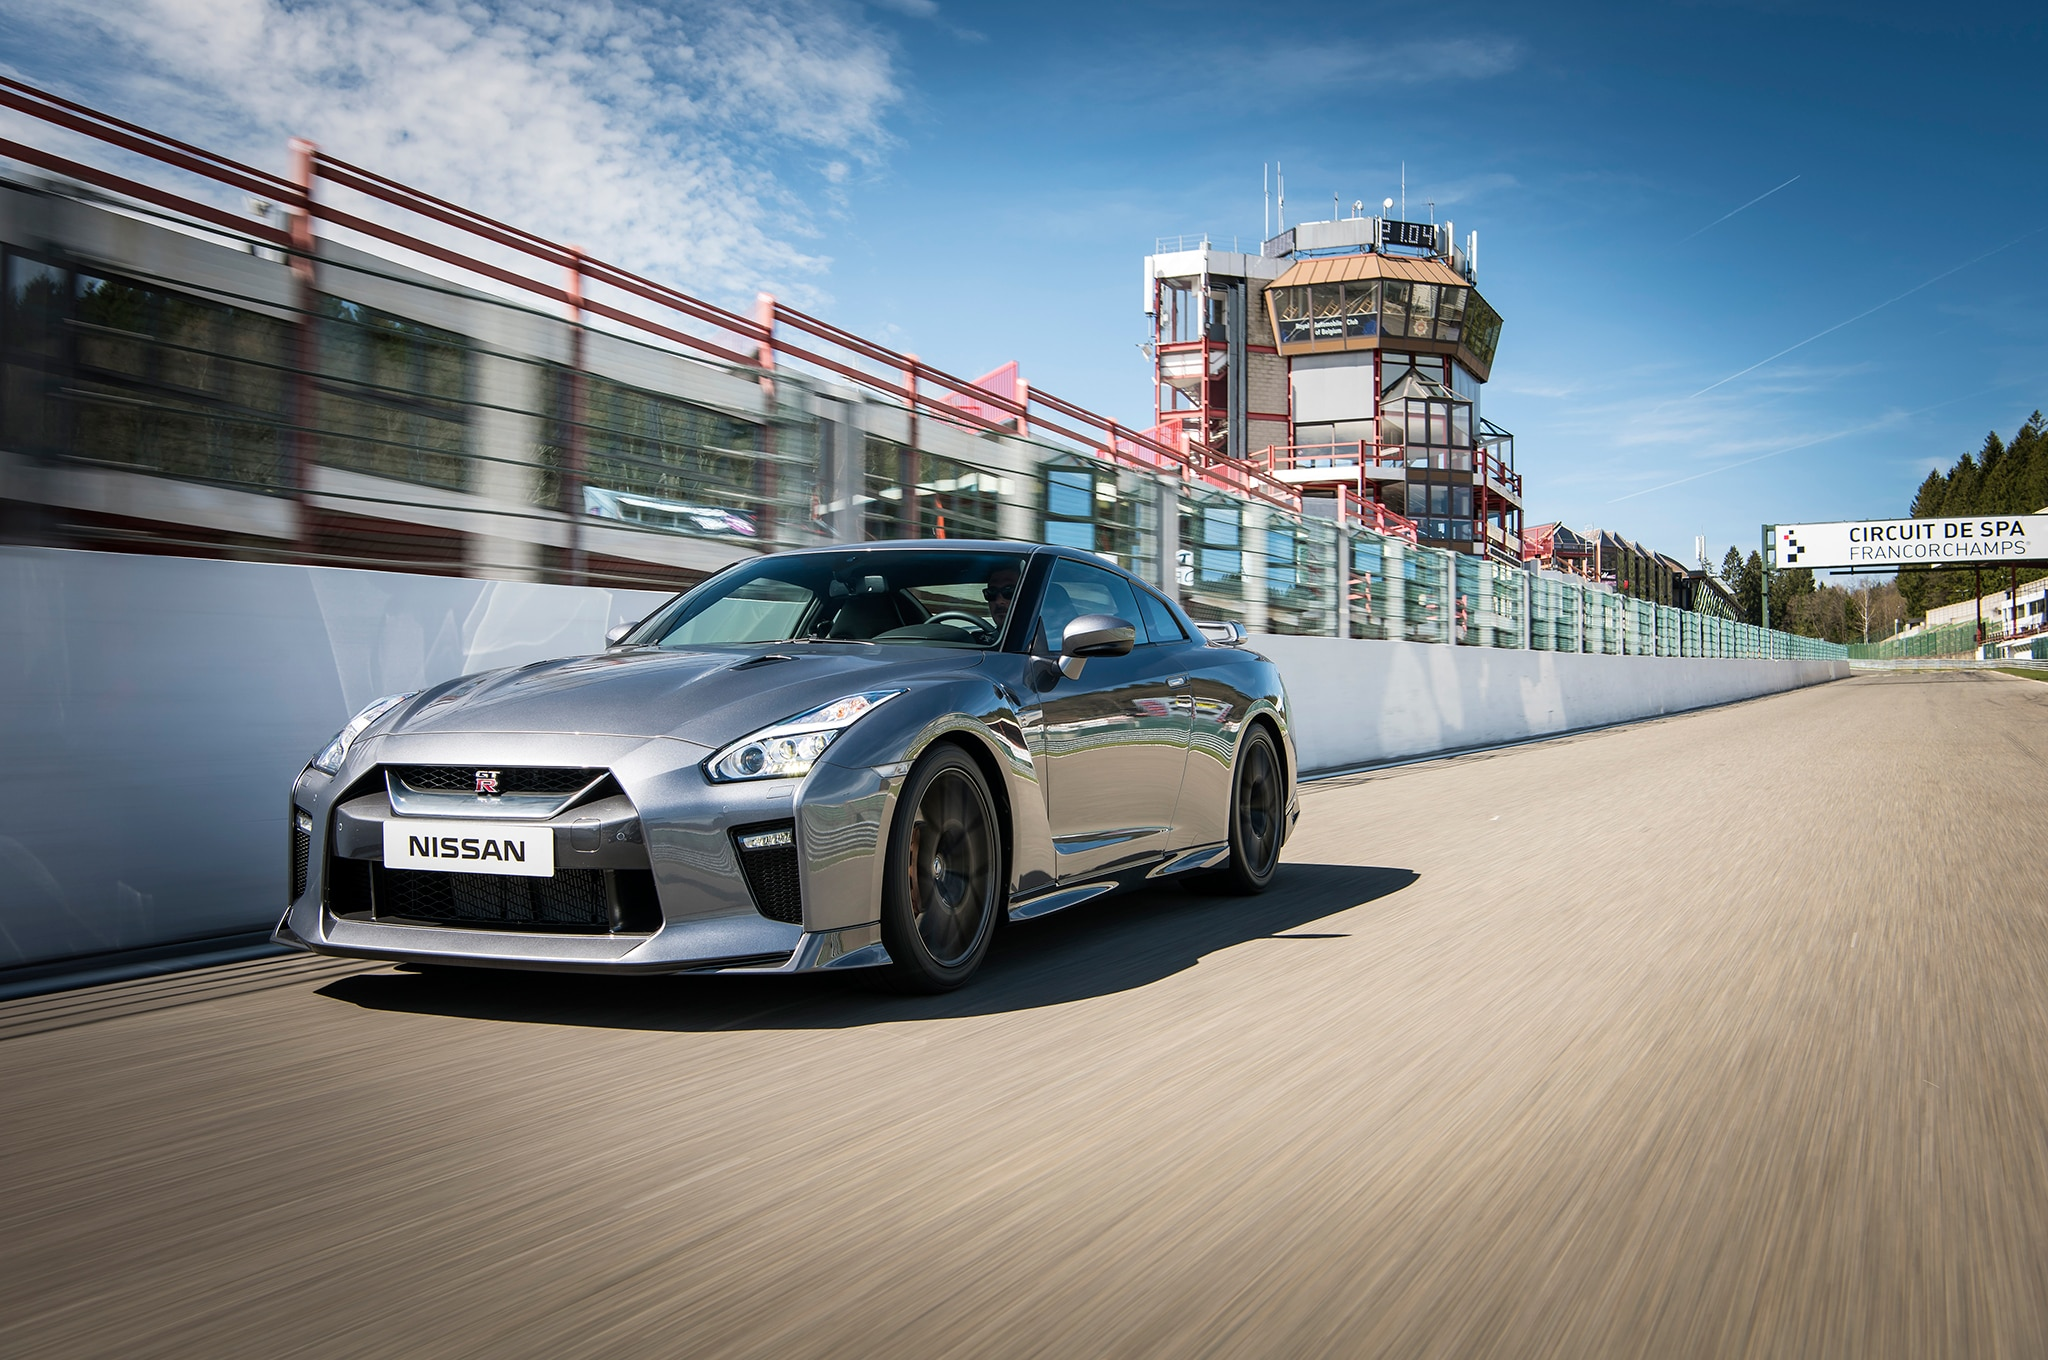 2017 Nissan Gt R Msrp >> 2017 Nissan GT-R Starting Price Jumps to $111,585 | Automobile Magazine